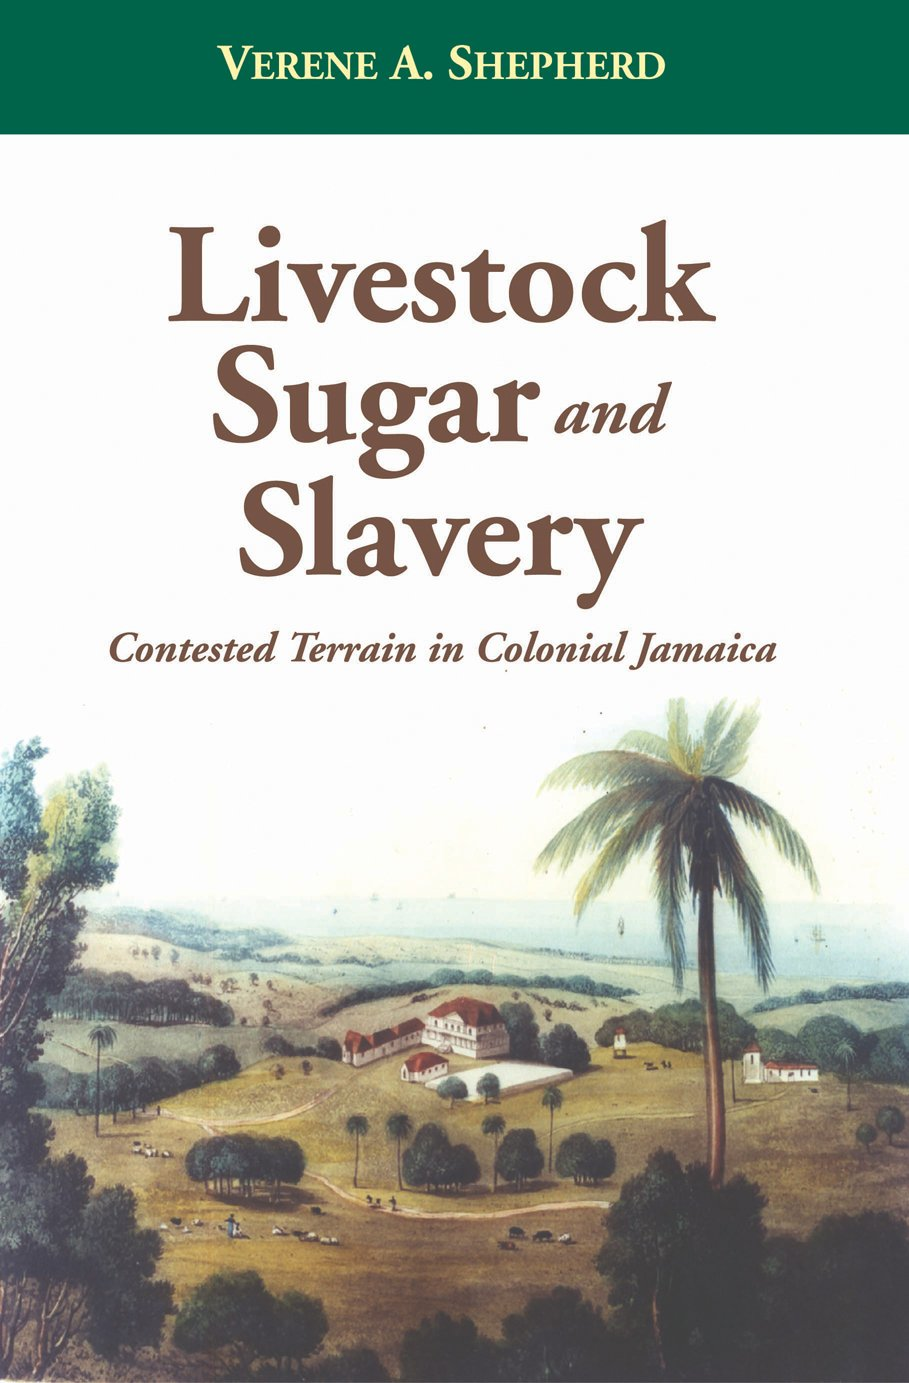 Livestock, Sugar and Slavery: Contested Terrain in Colonial Jamaica